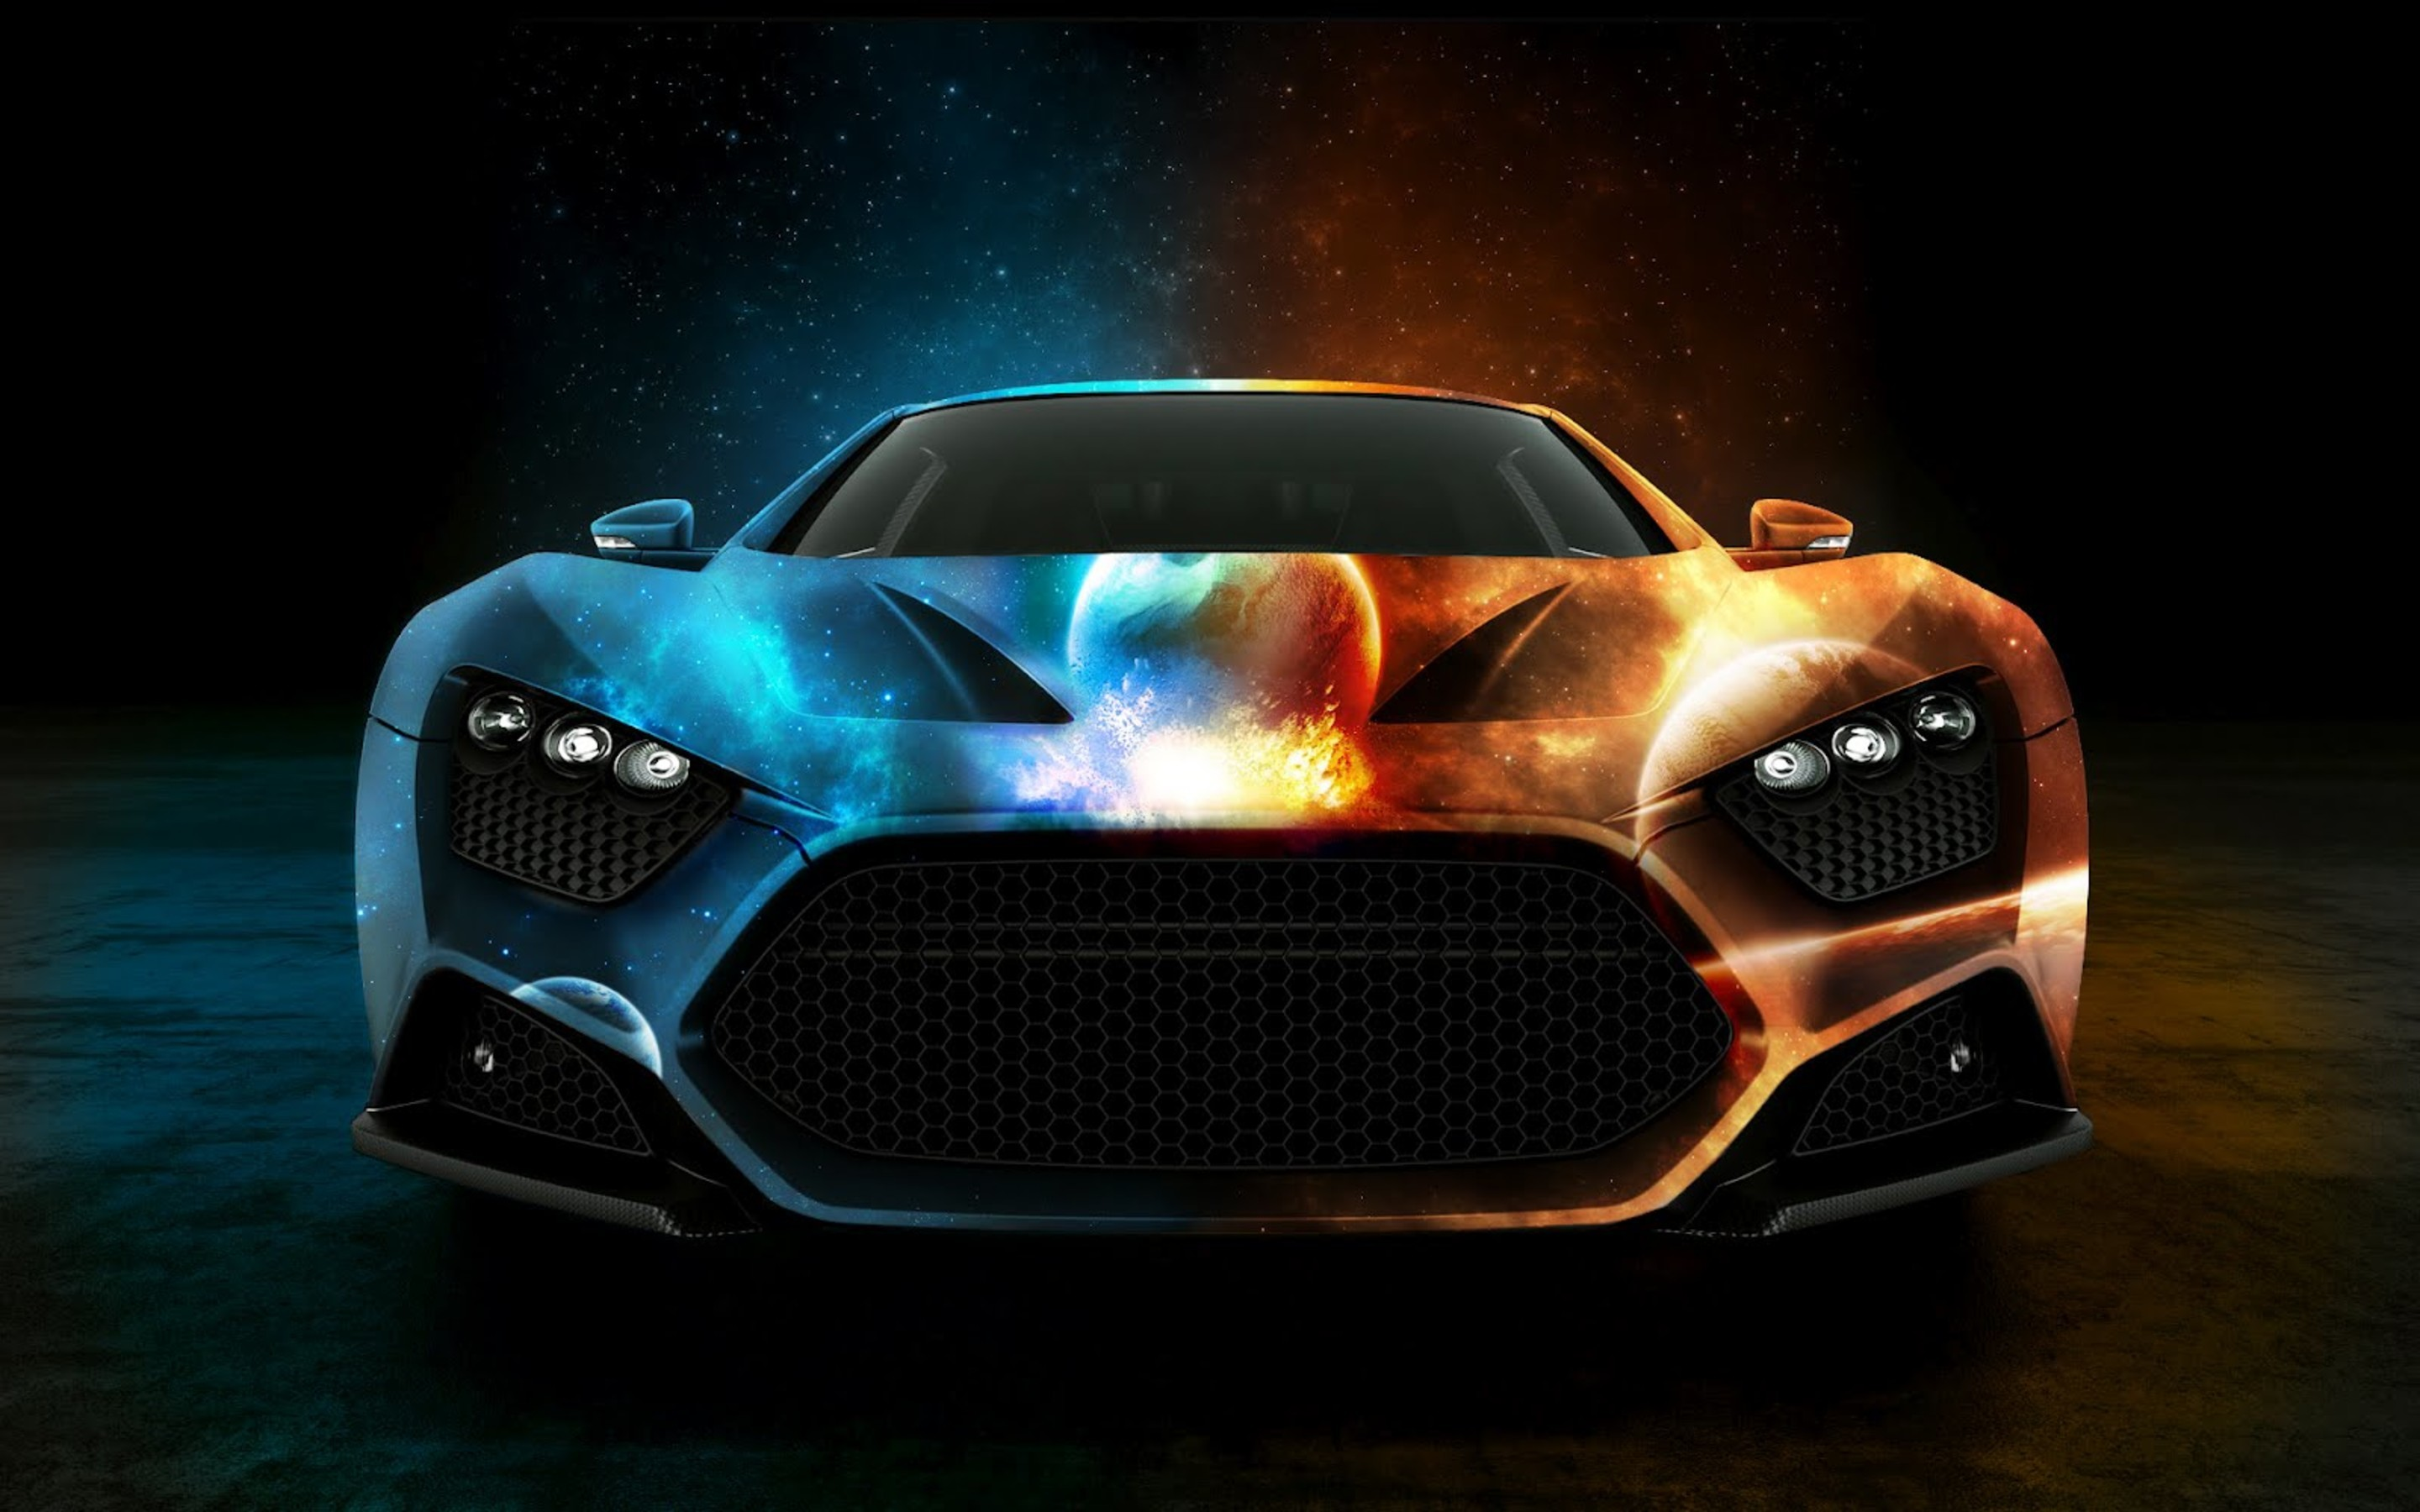 Cool HD Pictures Find best latest Cool HD Pictures for your PC desktop  background & mobile